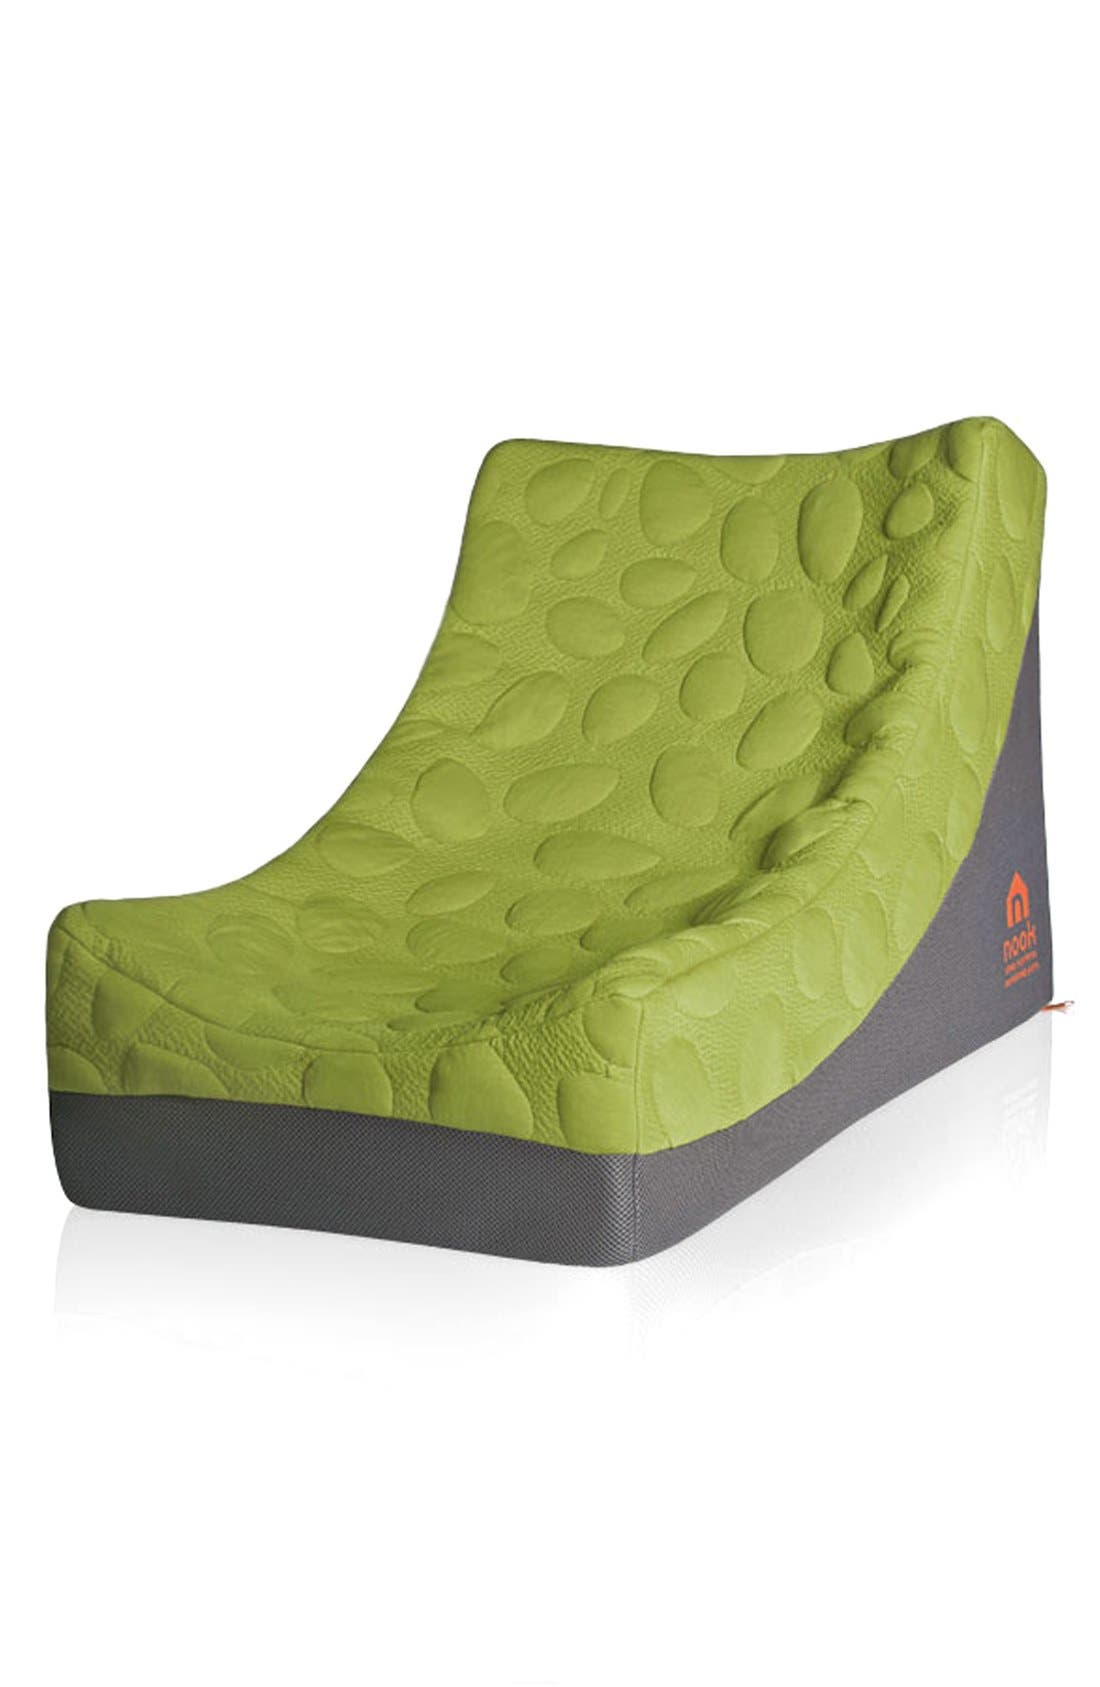 Nook Sleep Systems 'Pebble' Lounger (Toddler & Little Kid)